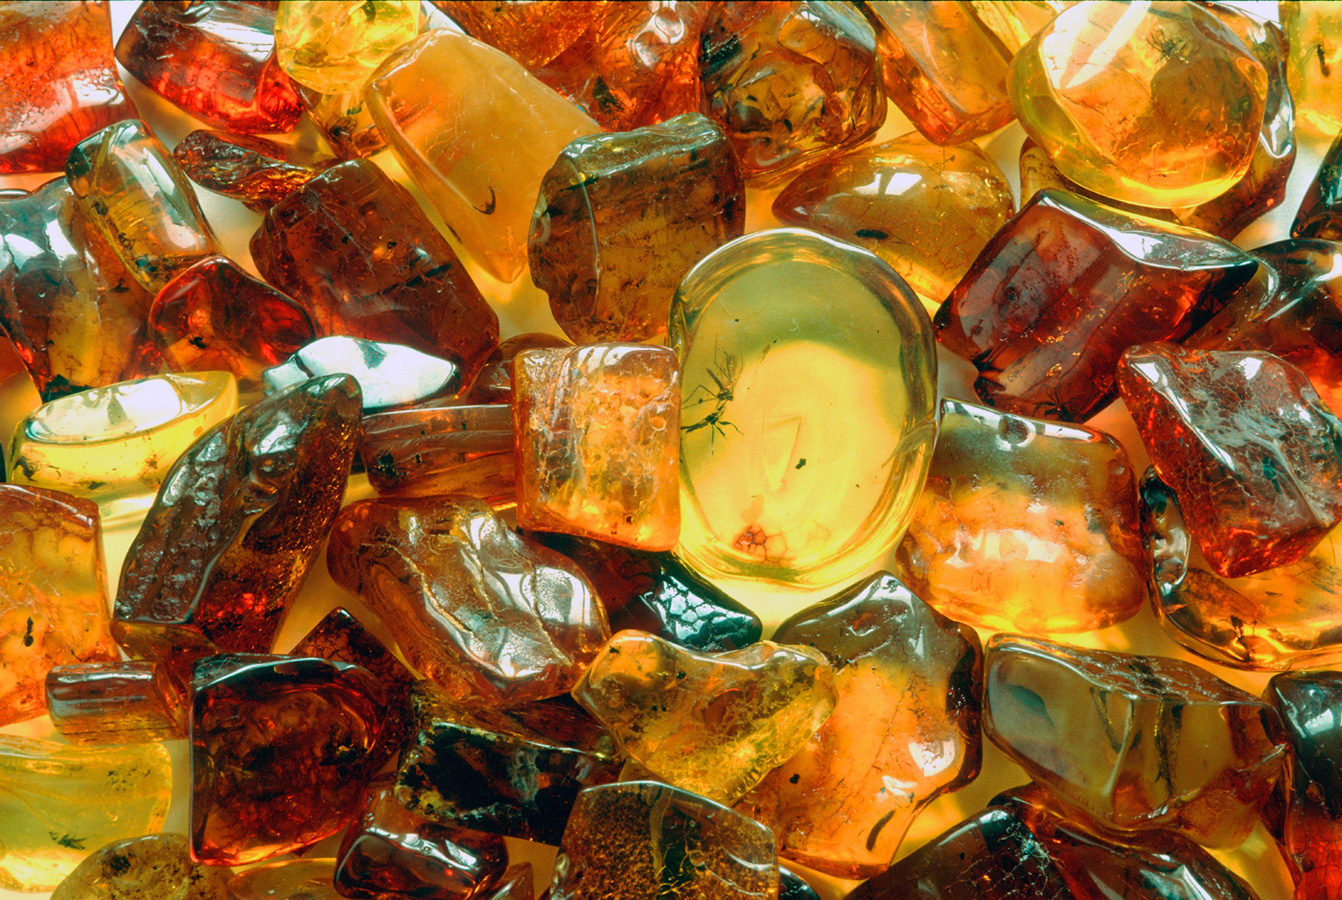 Prehistoric inclusions, such as insects and plants are often found in Baltic Sea amber